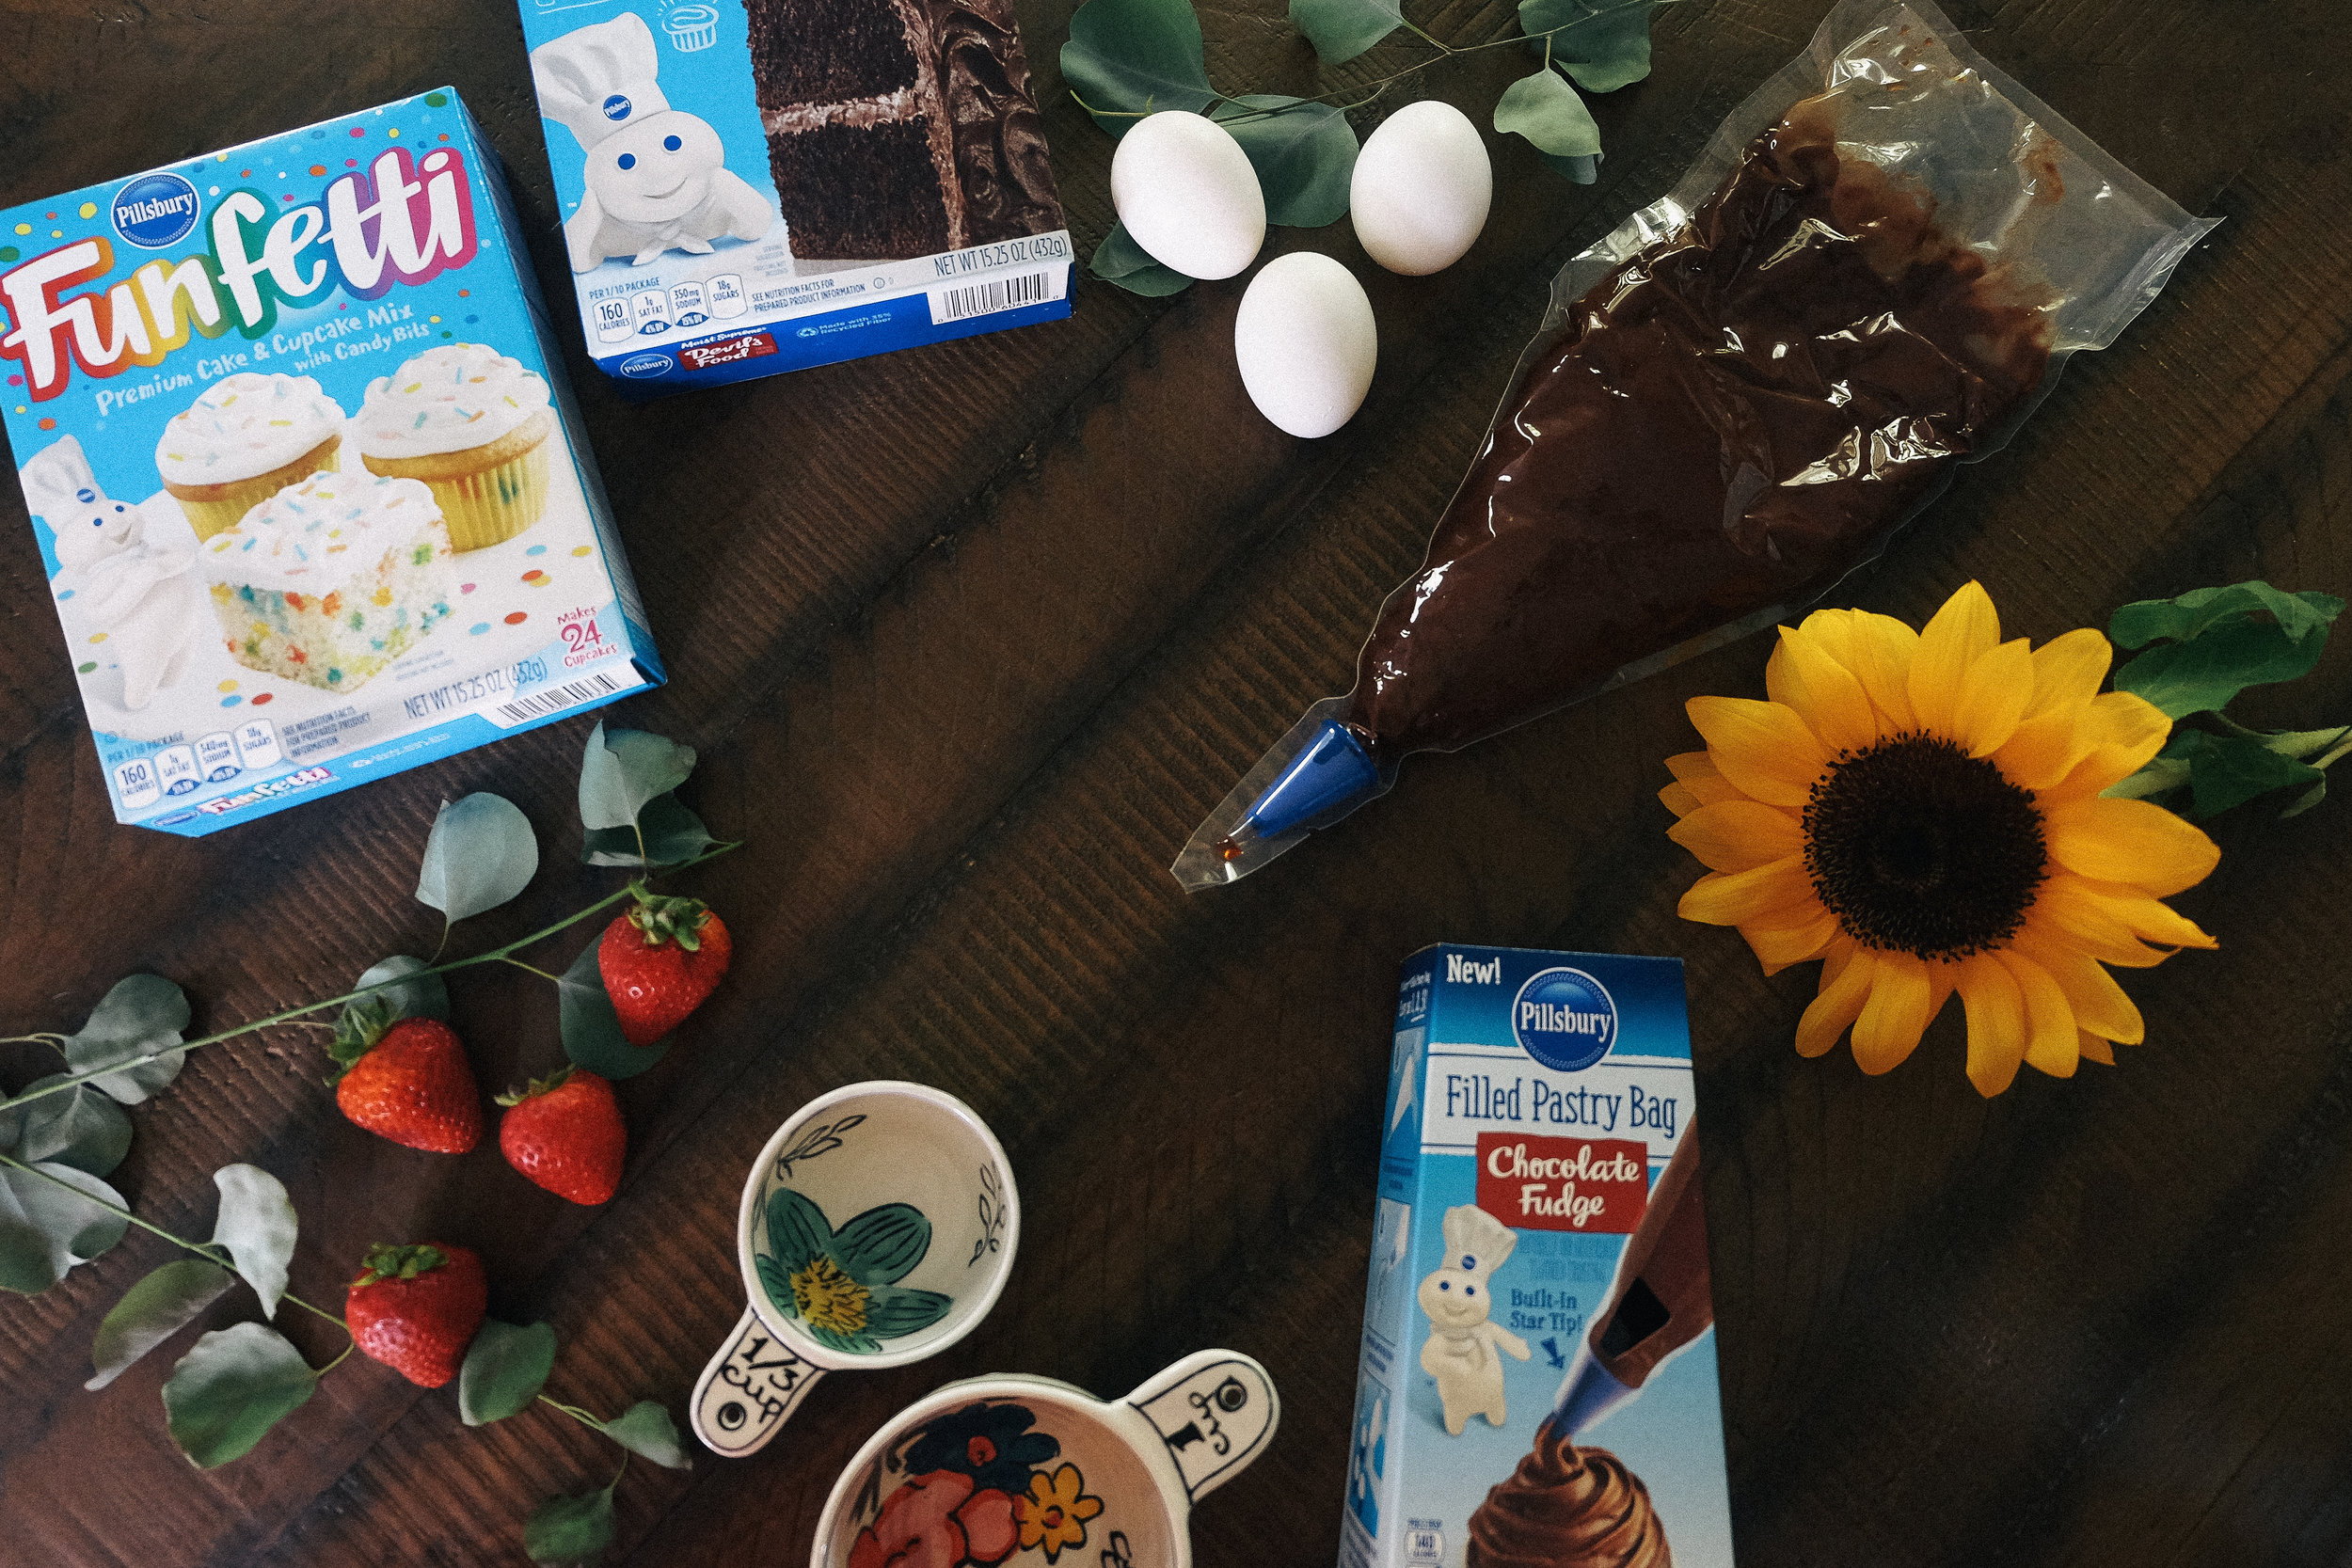 Bake Someone's Day With Pillsbury via chelceytate.com #DoughboySurprise #Sponsored